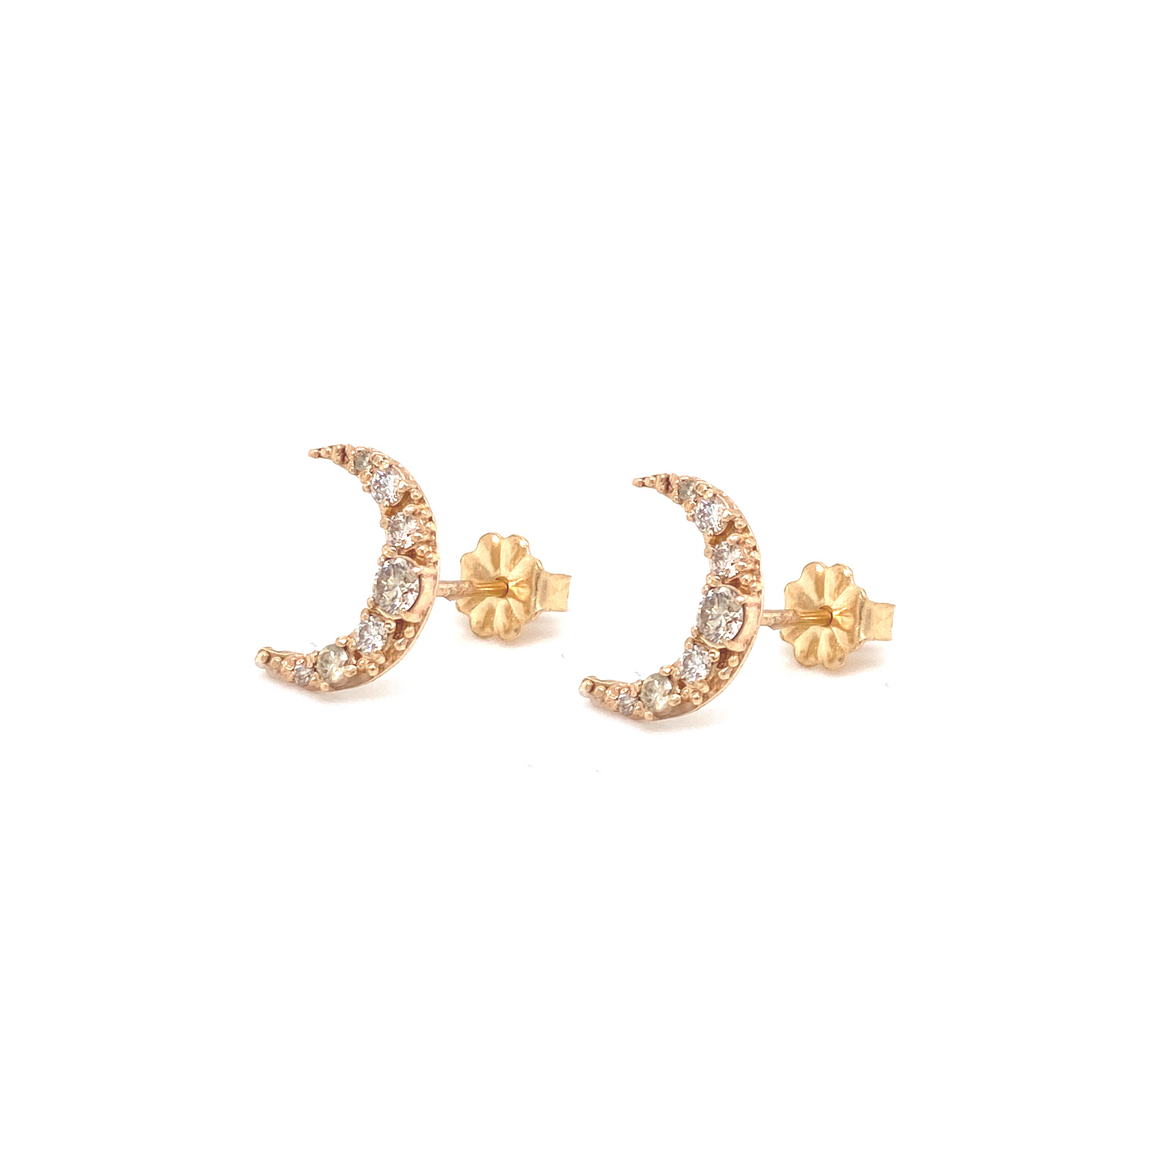 Crescent Moon Studs - Lesley Ann Jewels